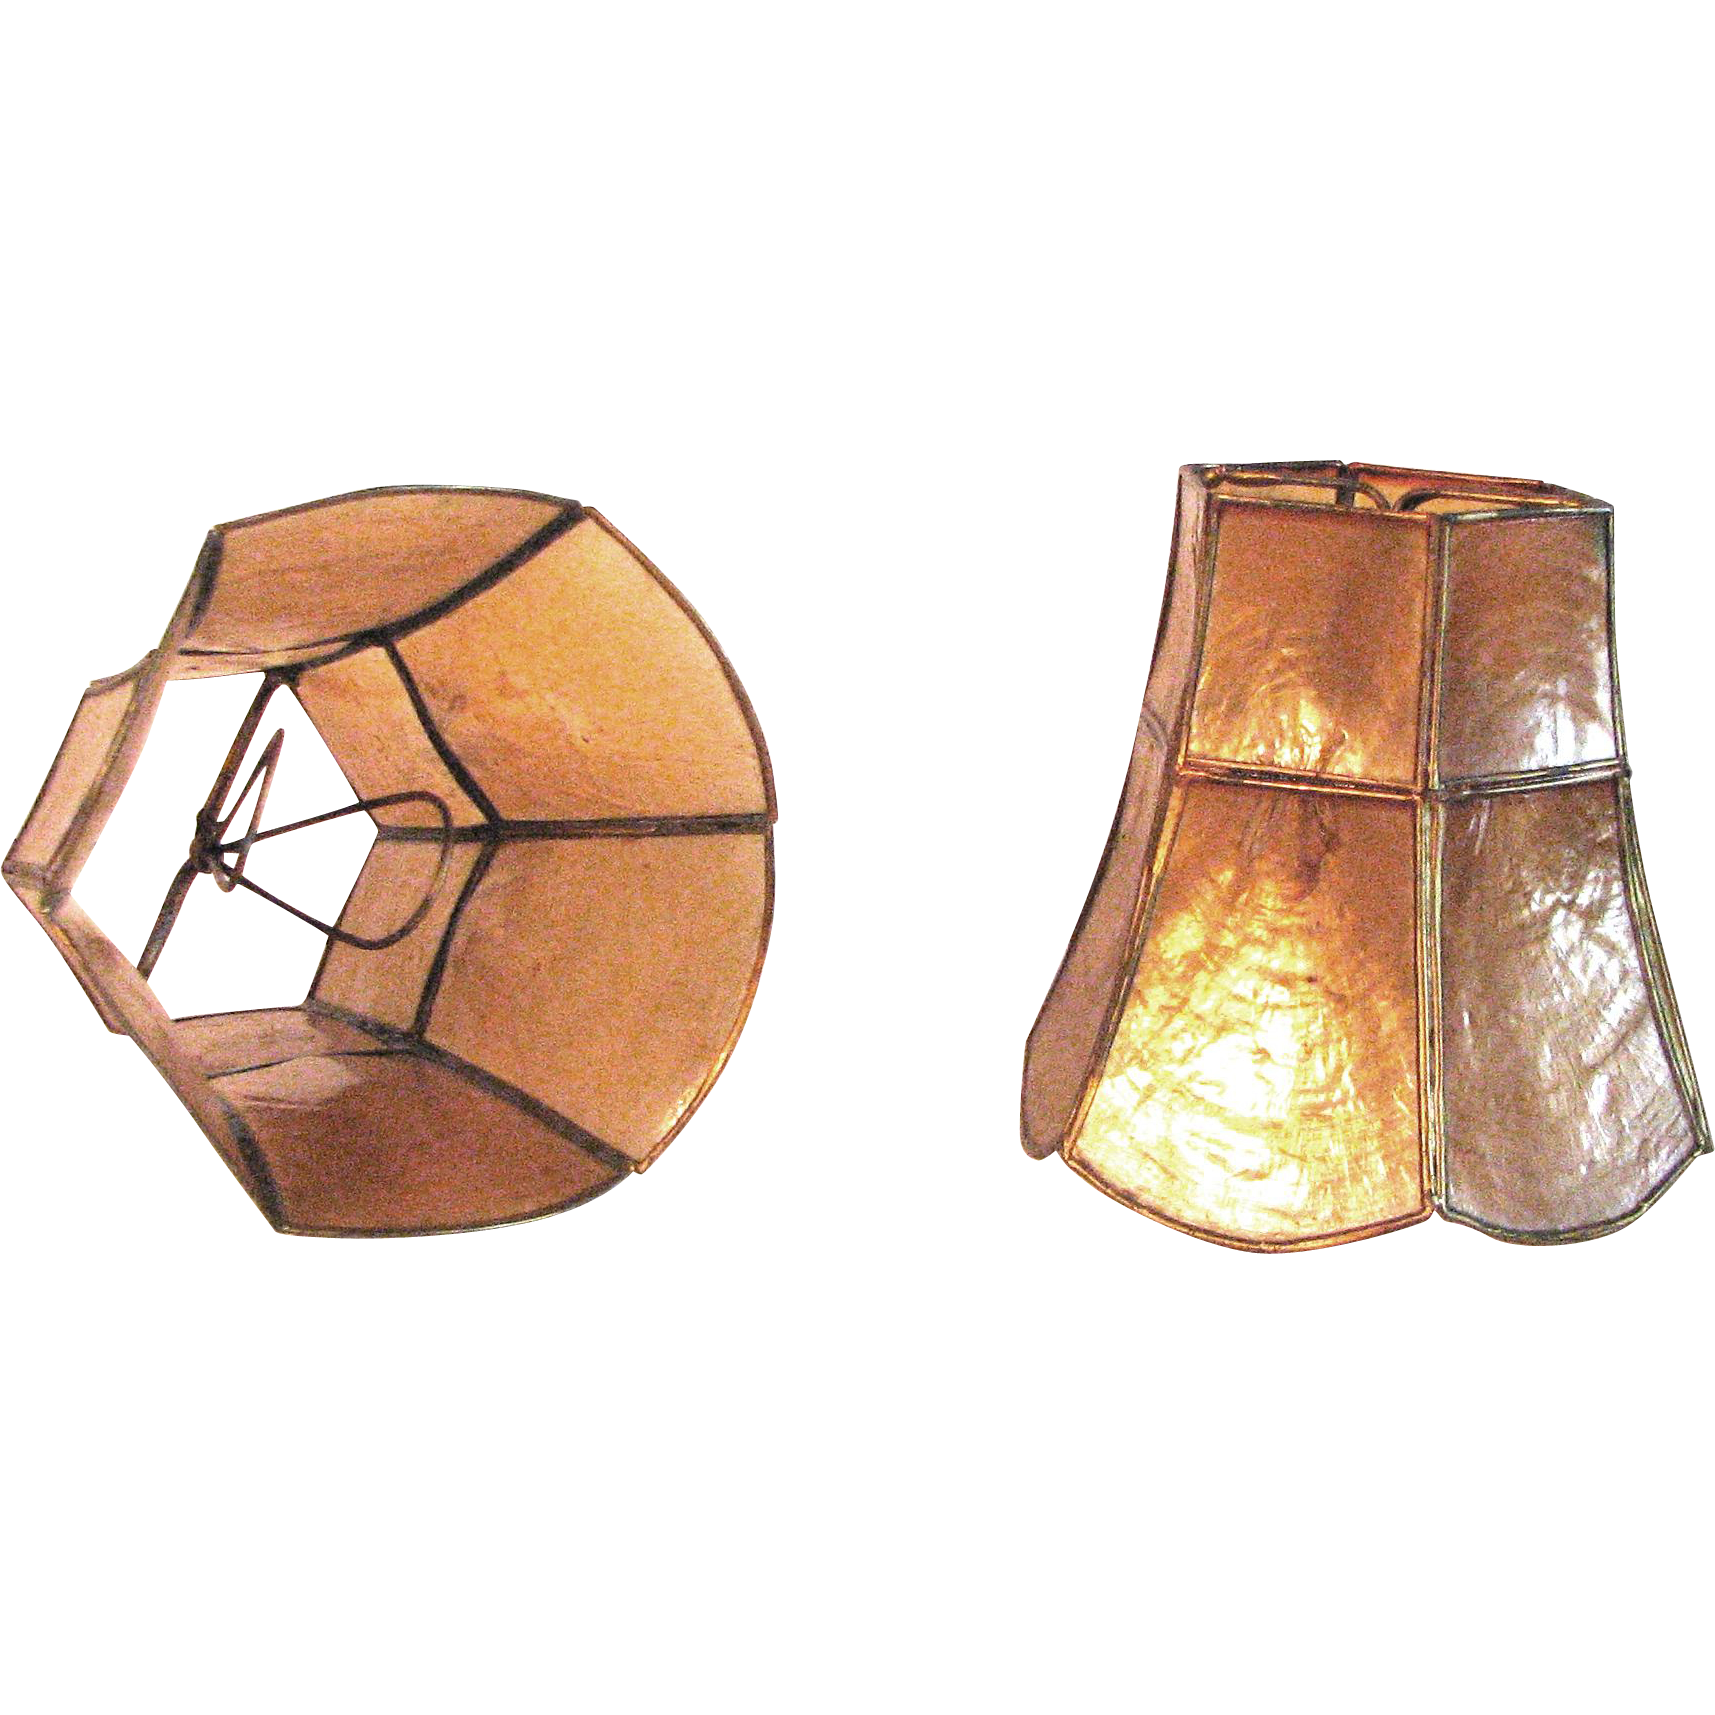 Pair Of Vintage Art Deco Mica Lamp Shades Sold On Ruby Lane